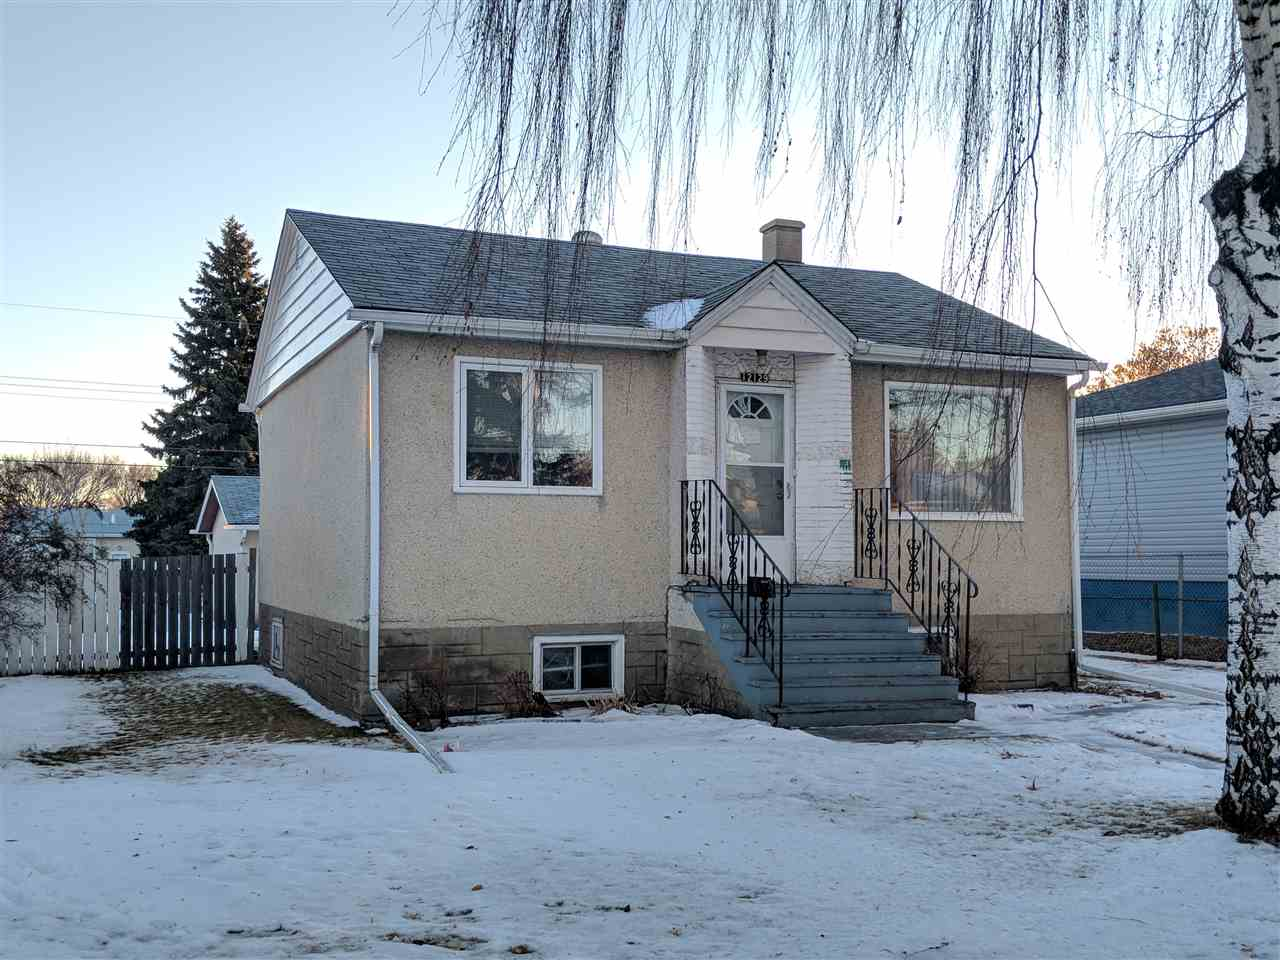 WIDE LOT with 15.2m frontage.  TRIPLE CAR GARAGE!  This 3 BEDROOM raised bungalow with 2 BATHROOMS has LOCATION, POTENTIAL AND  QUALITY OF LIFE taken care of when you look at this home.  Less than a block away from Beacon Heights School, easy access to Yellowhead & A MASSIVE, MECHANICS DREAM,  GARAGE.